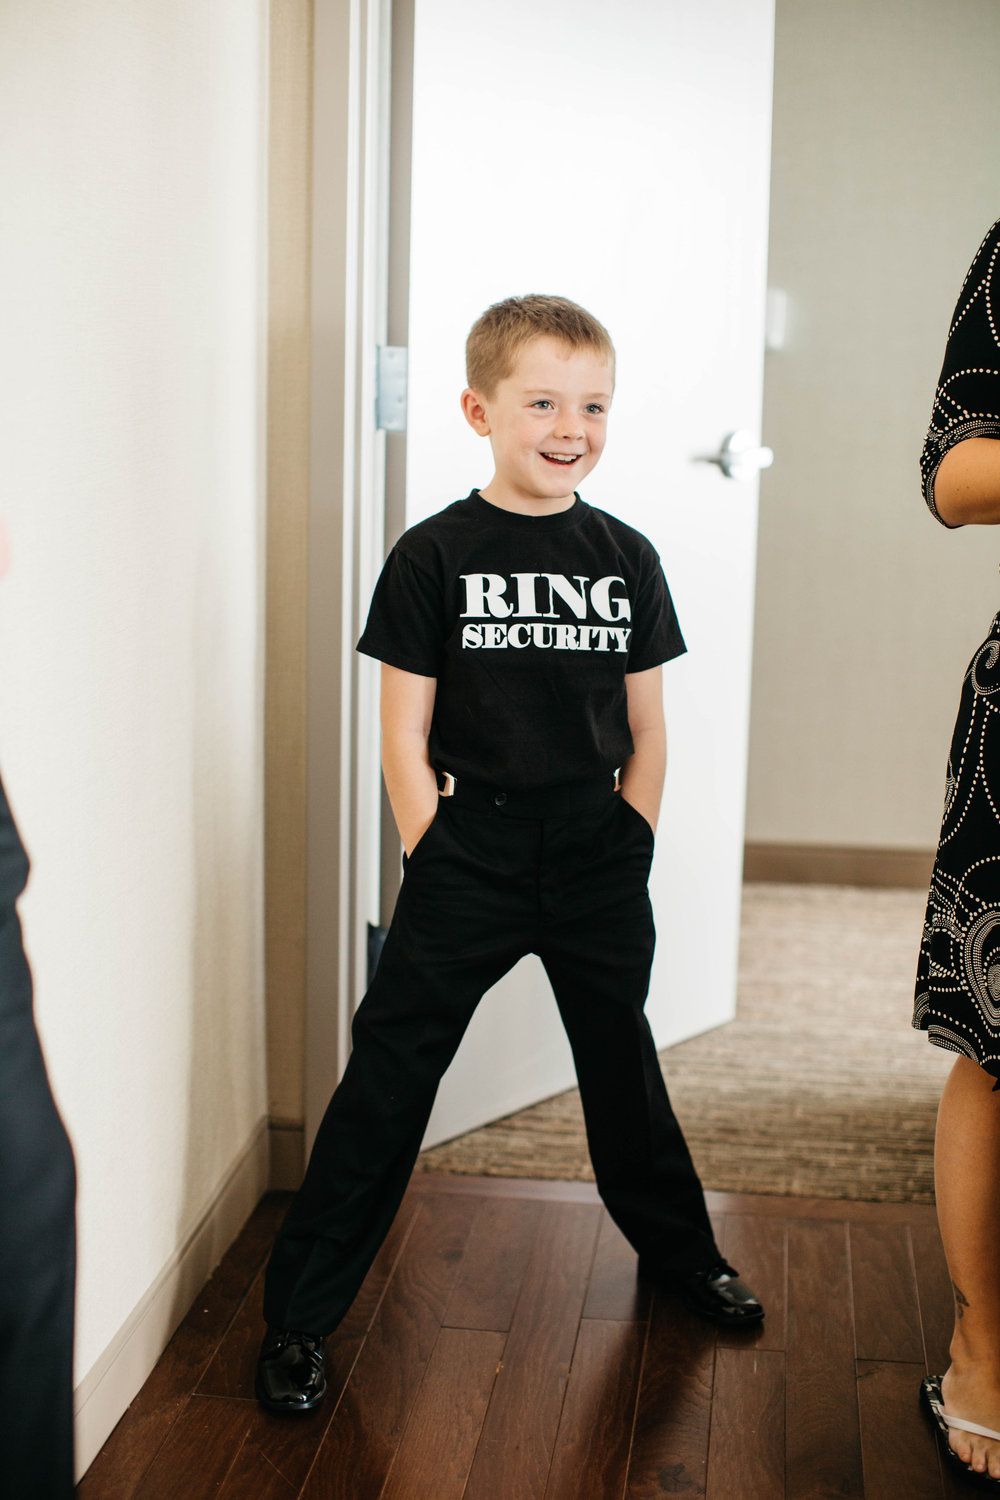 07 New Years Eve Wedding Ring Bearer Ring Security Aribella Events.jpg